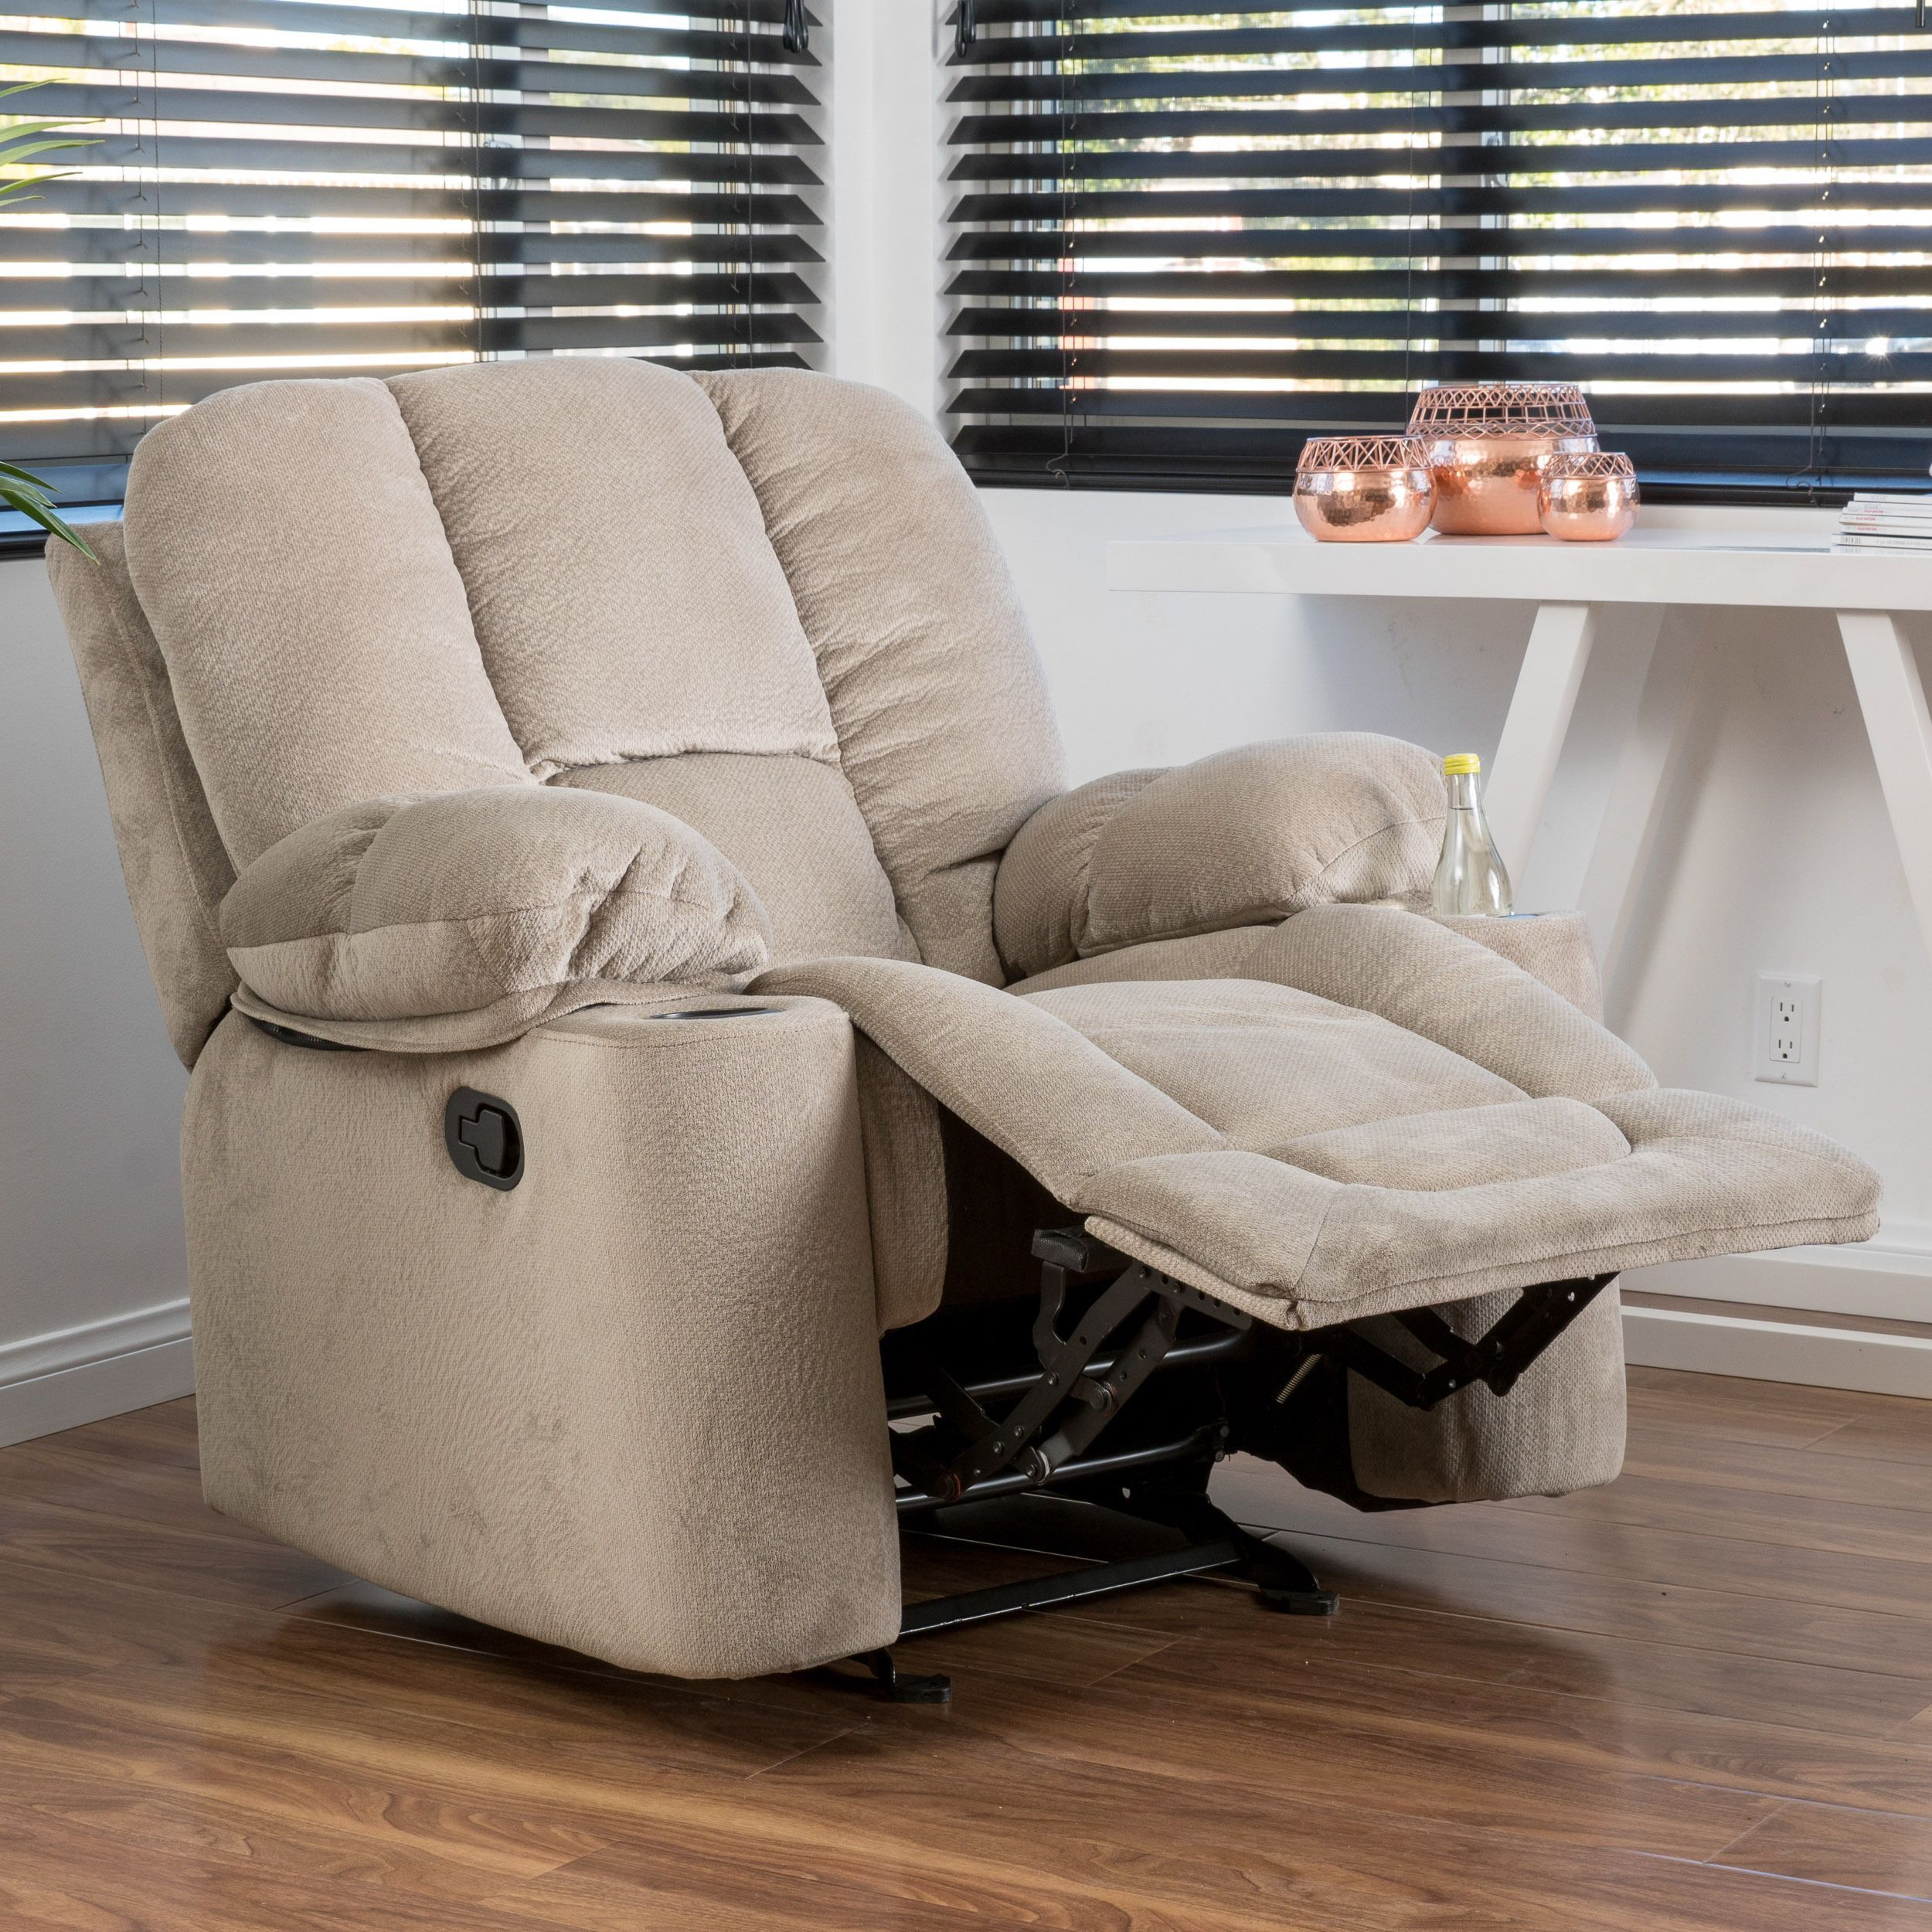 Gannon Fabric Glider Recliner Club Chairchristopher Knight Home With Gannon Linen Power Swivel Recliners (View 3 of 25)